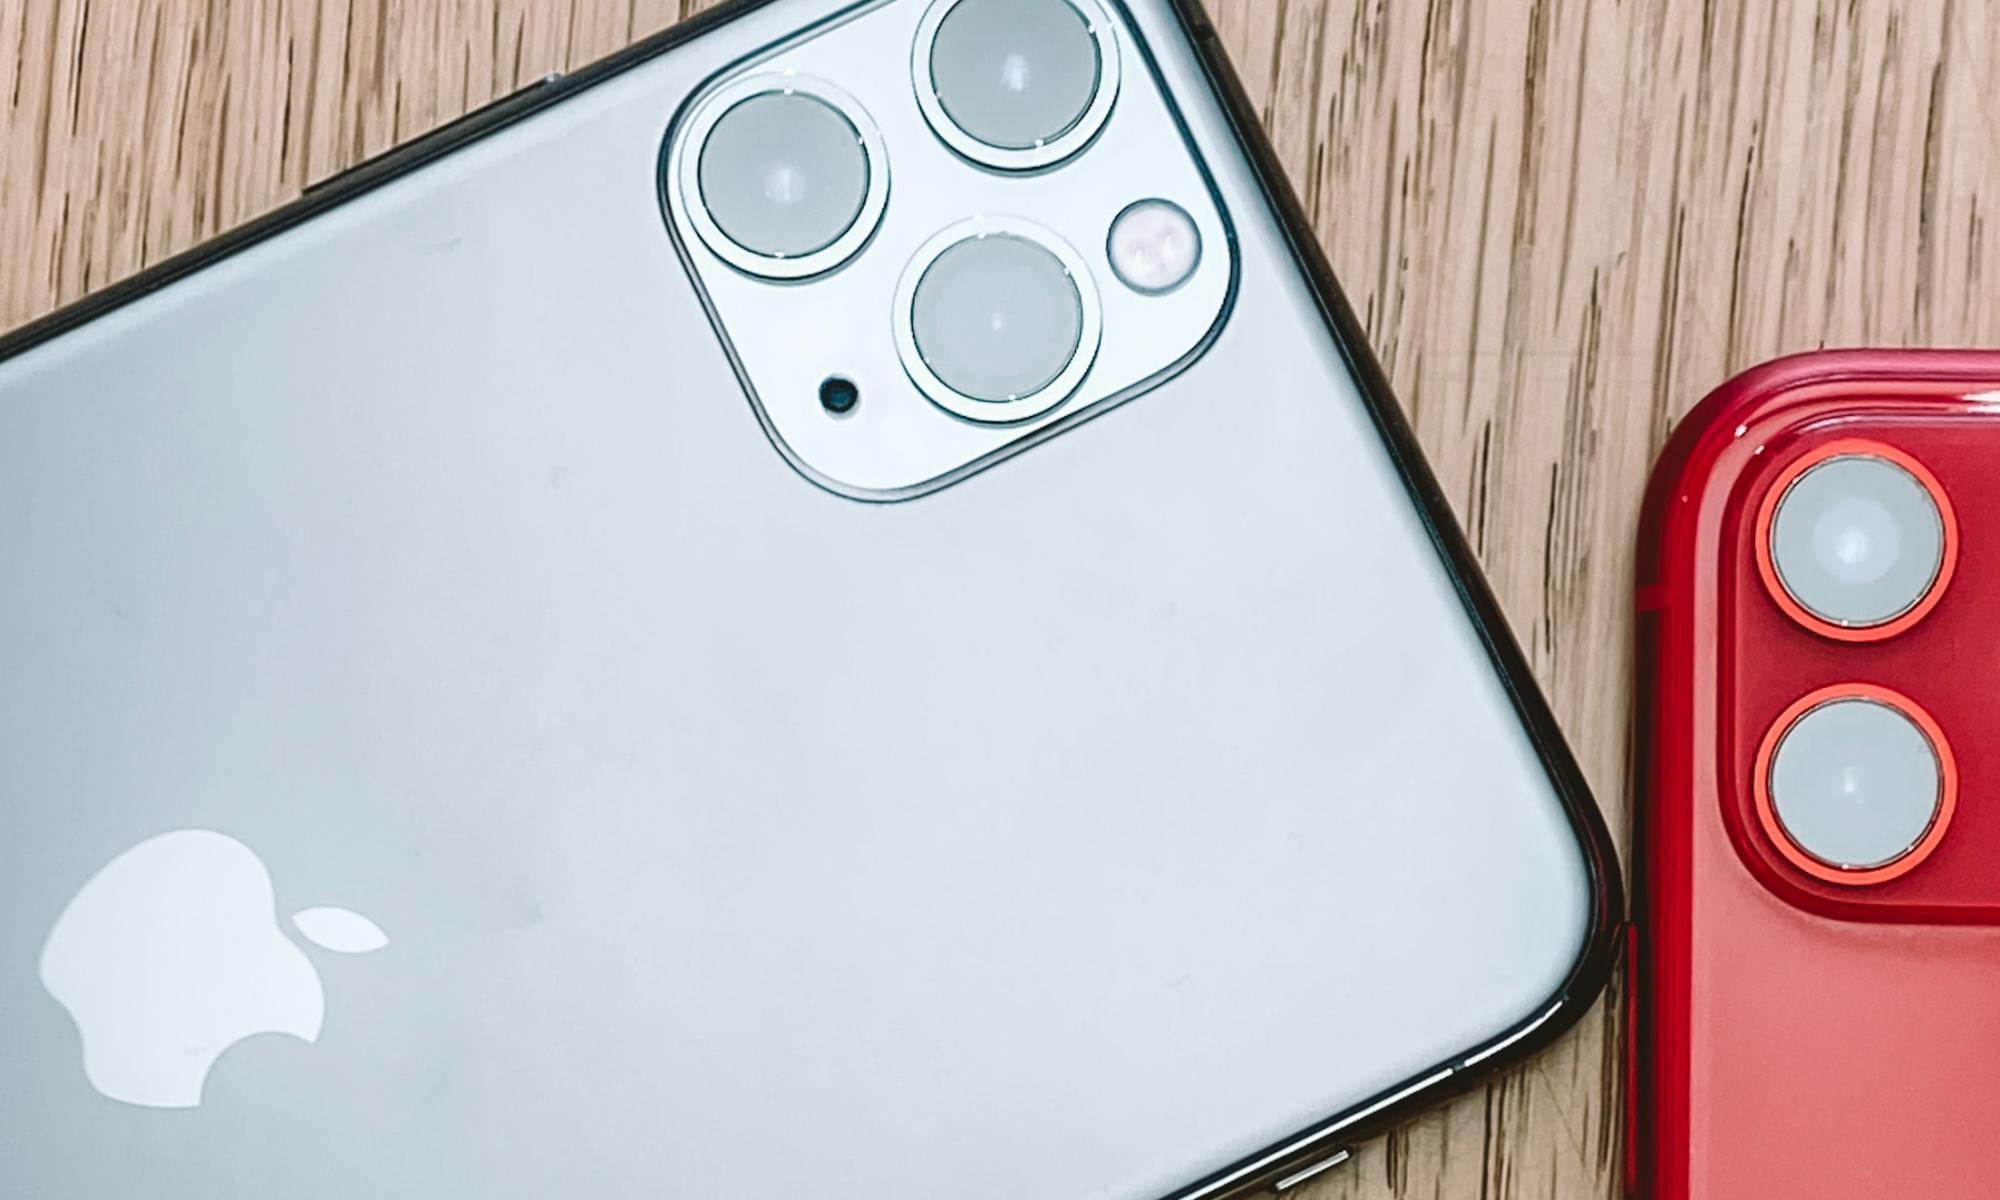 Silver iPhone 11 on a brown surface.